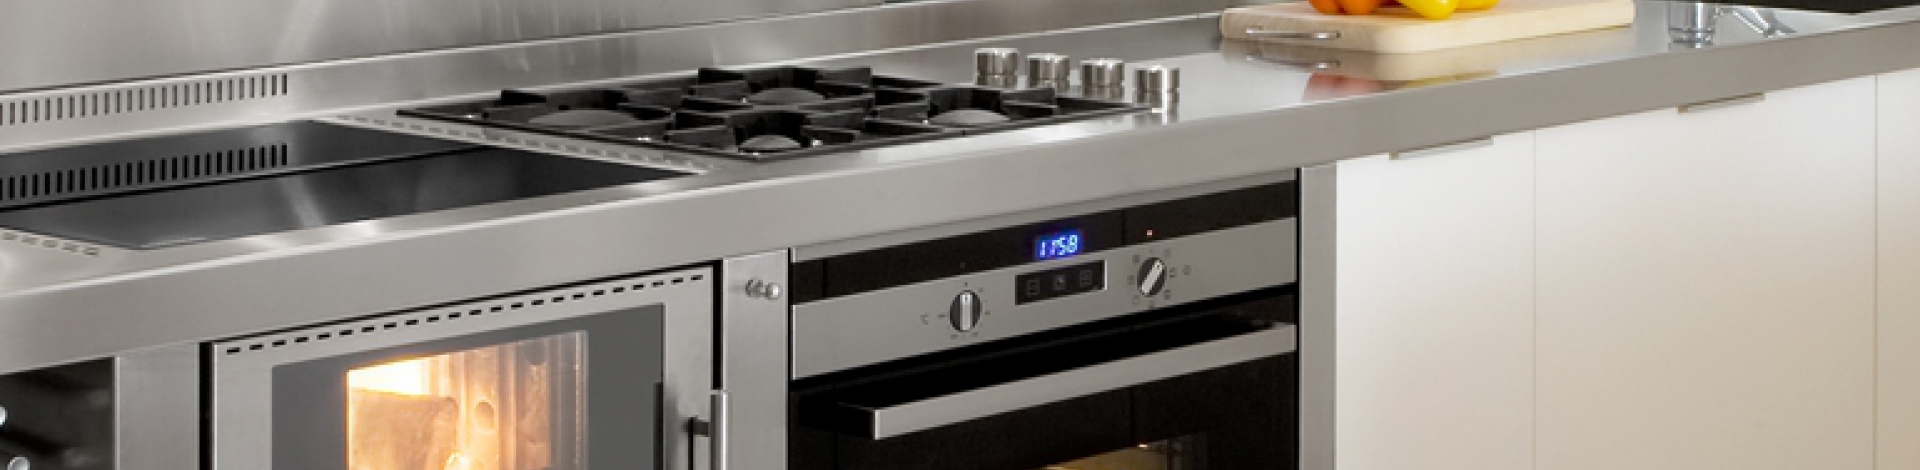 CUCINE COMBINATE PERTINGER